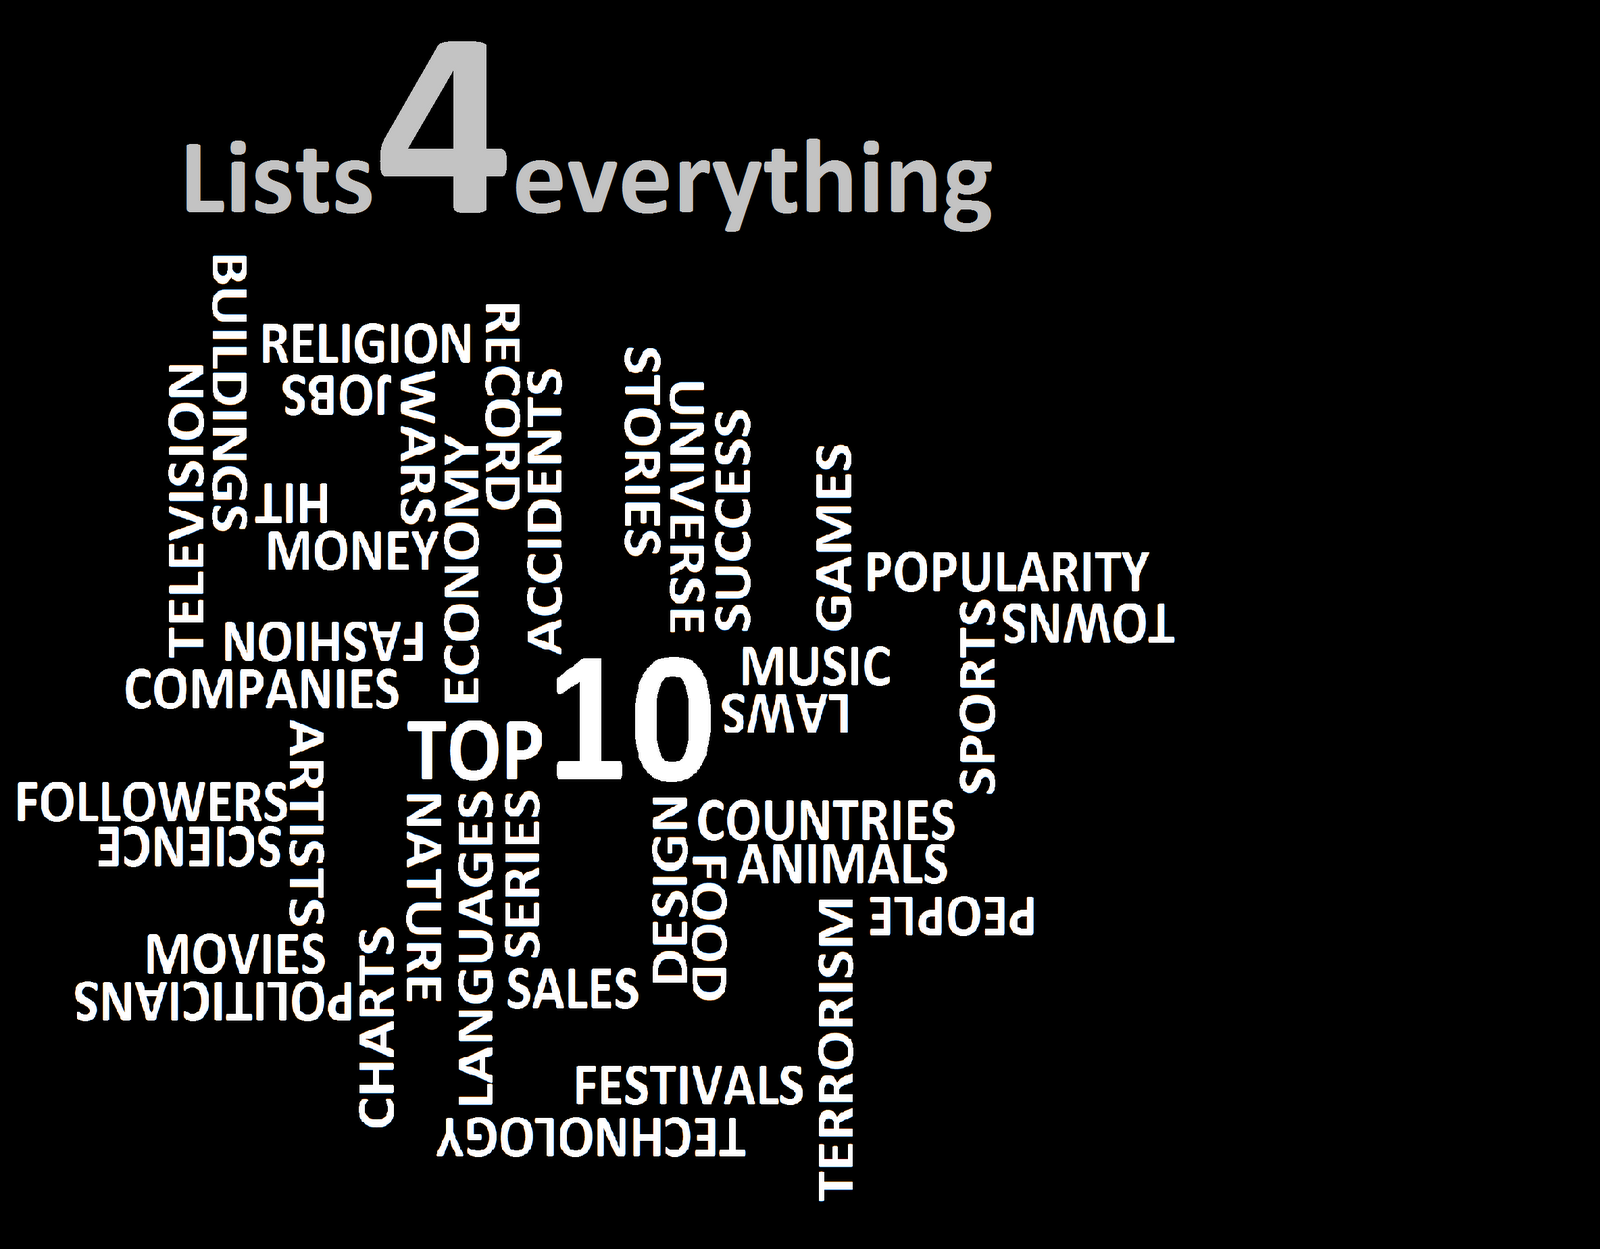 Lists4everything